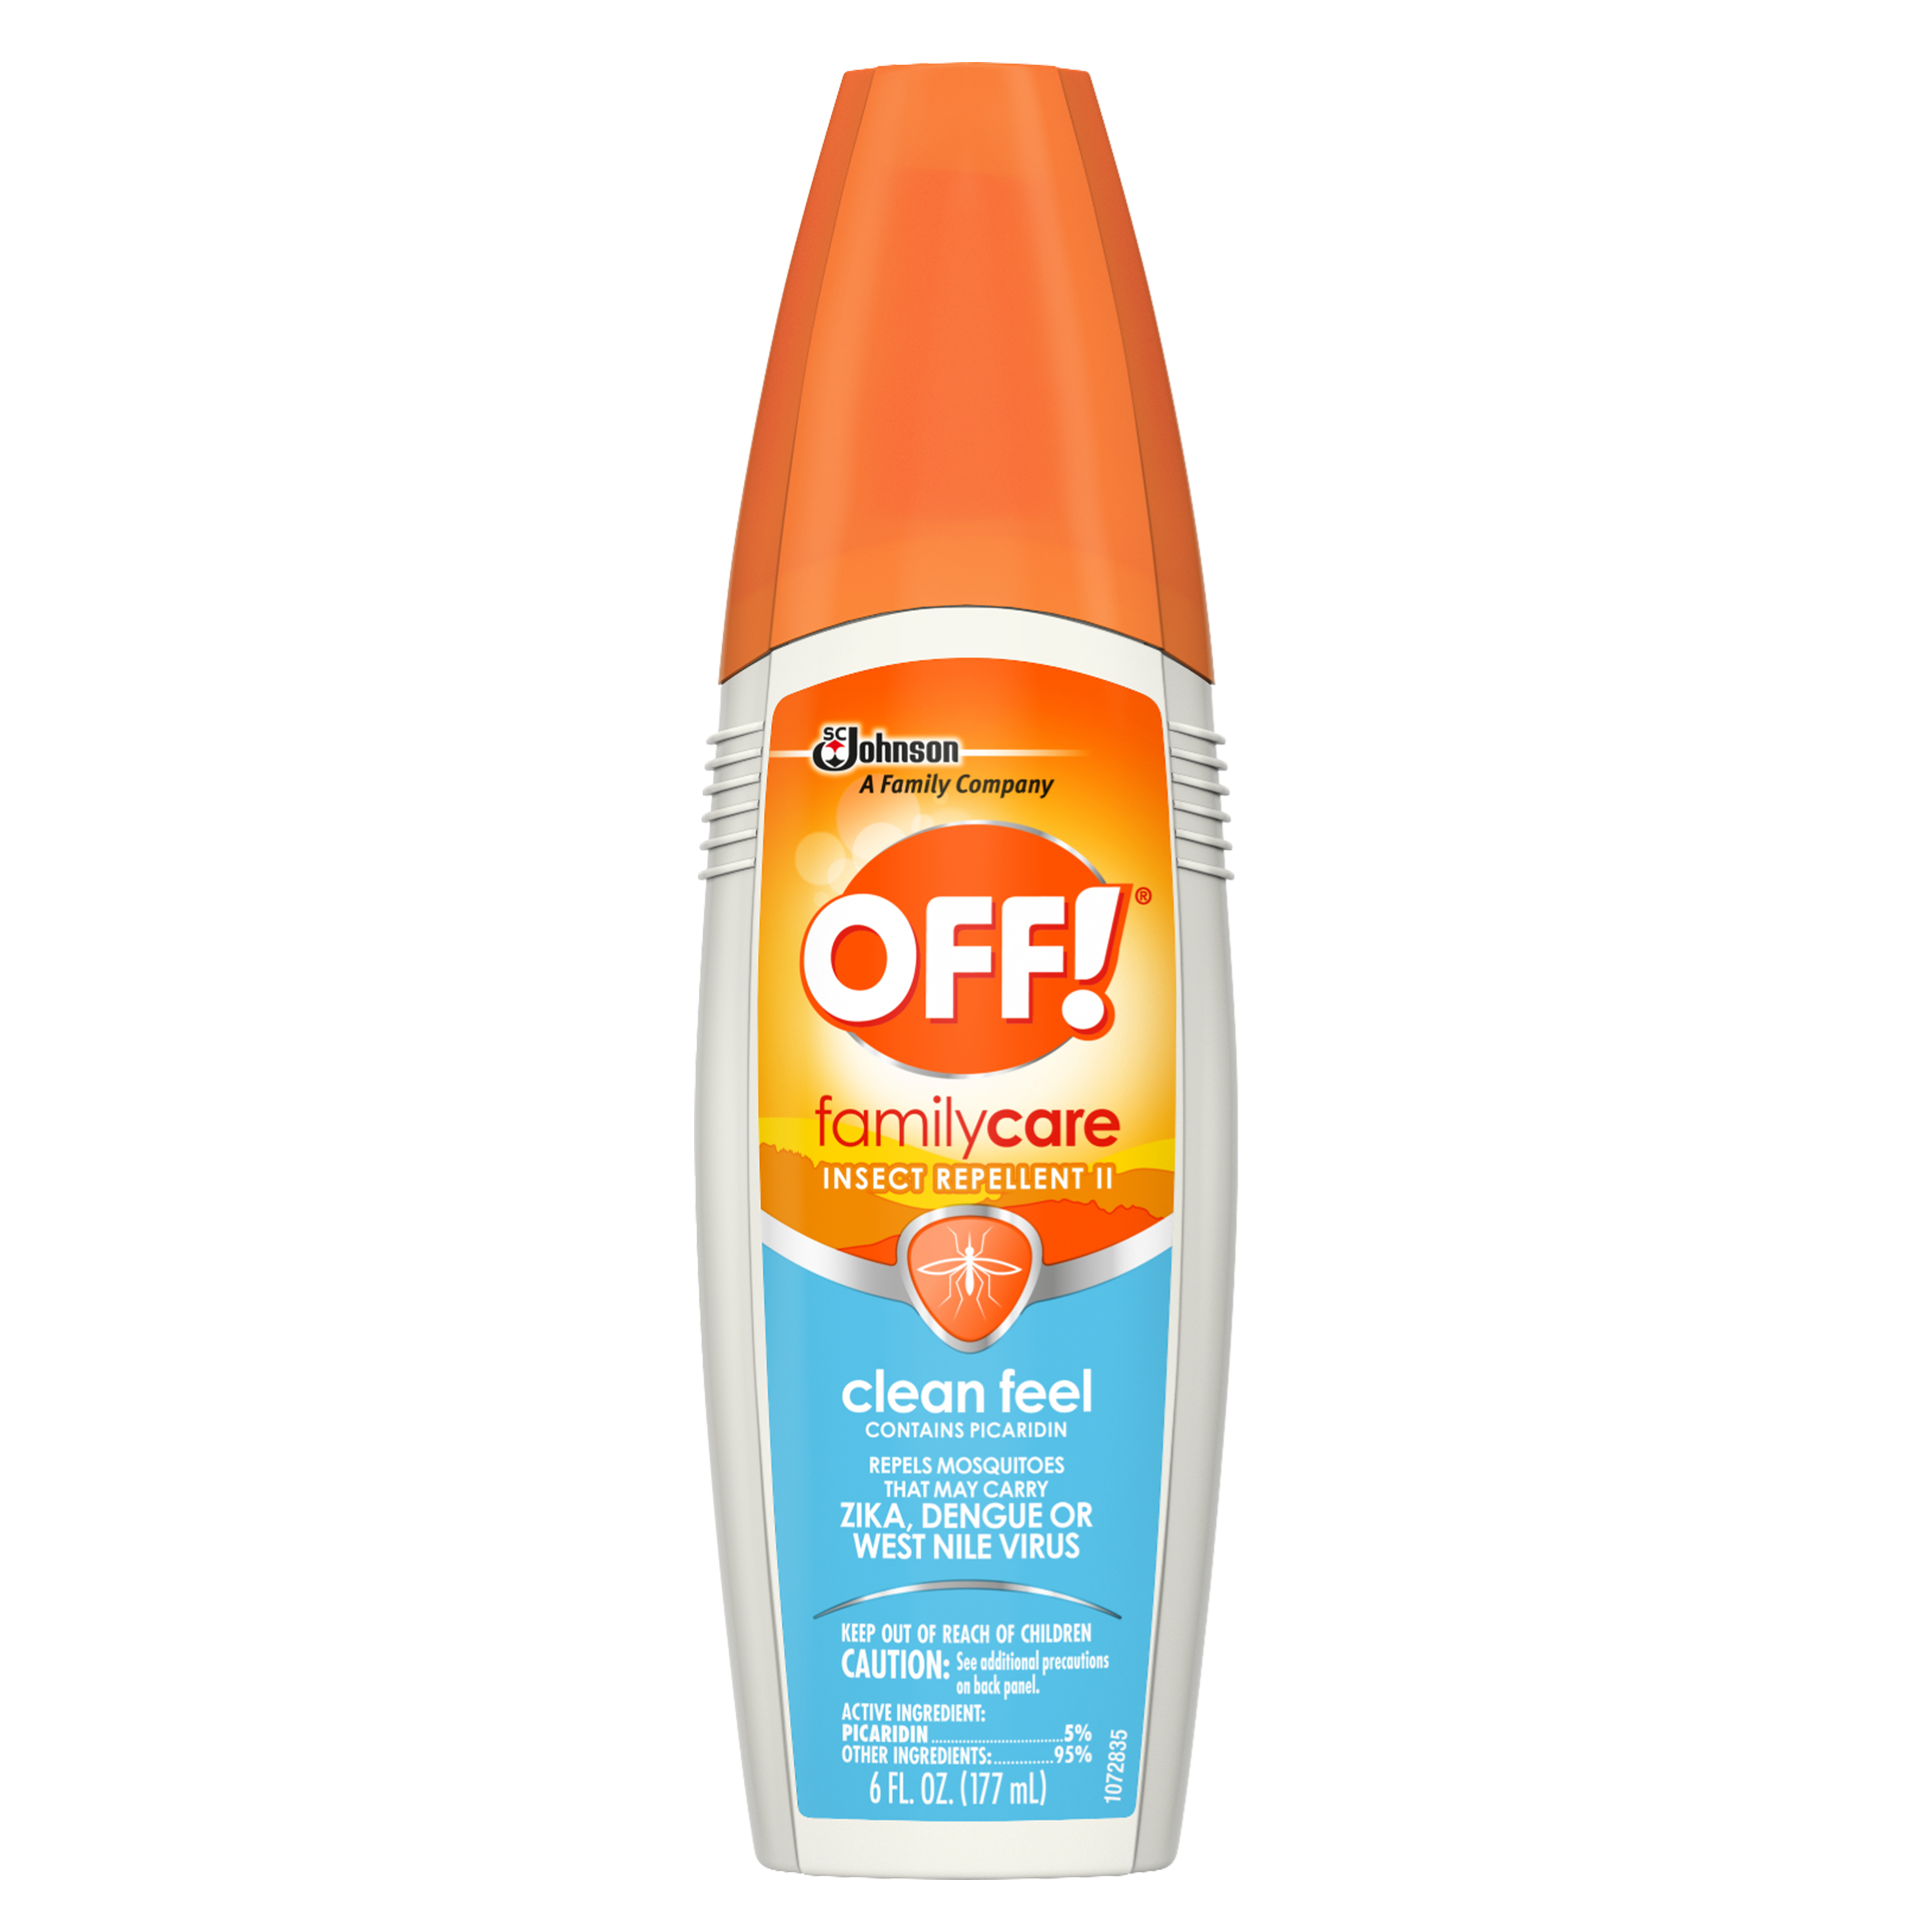 off-familycare-insect-repellent-ii-clean-feel-6oz-pump-629380